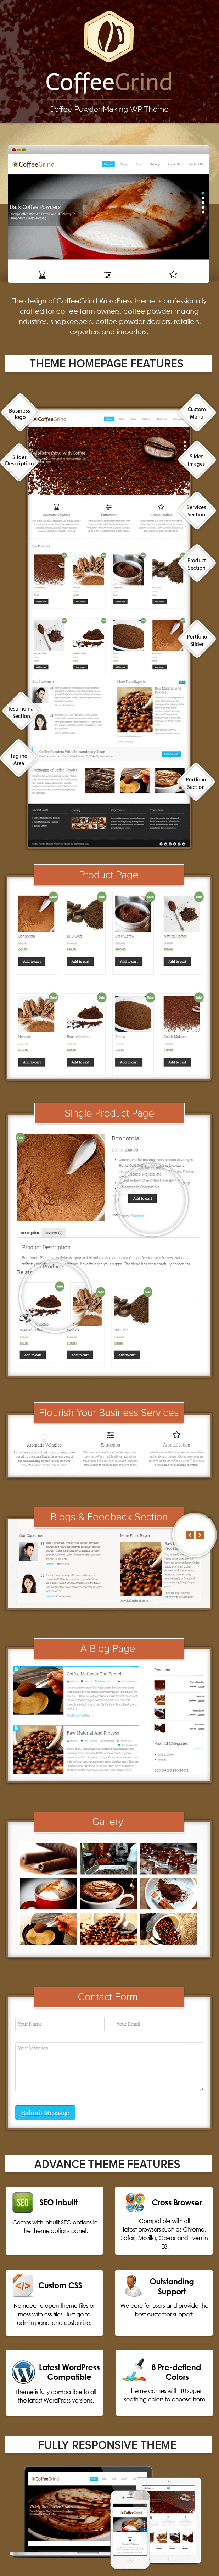 Coffee Powder Making WP Theme